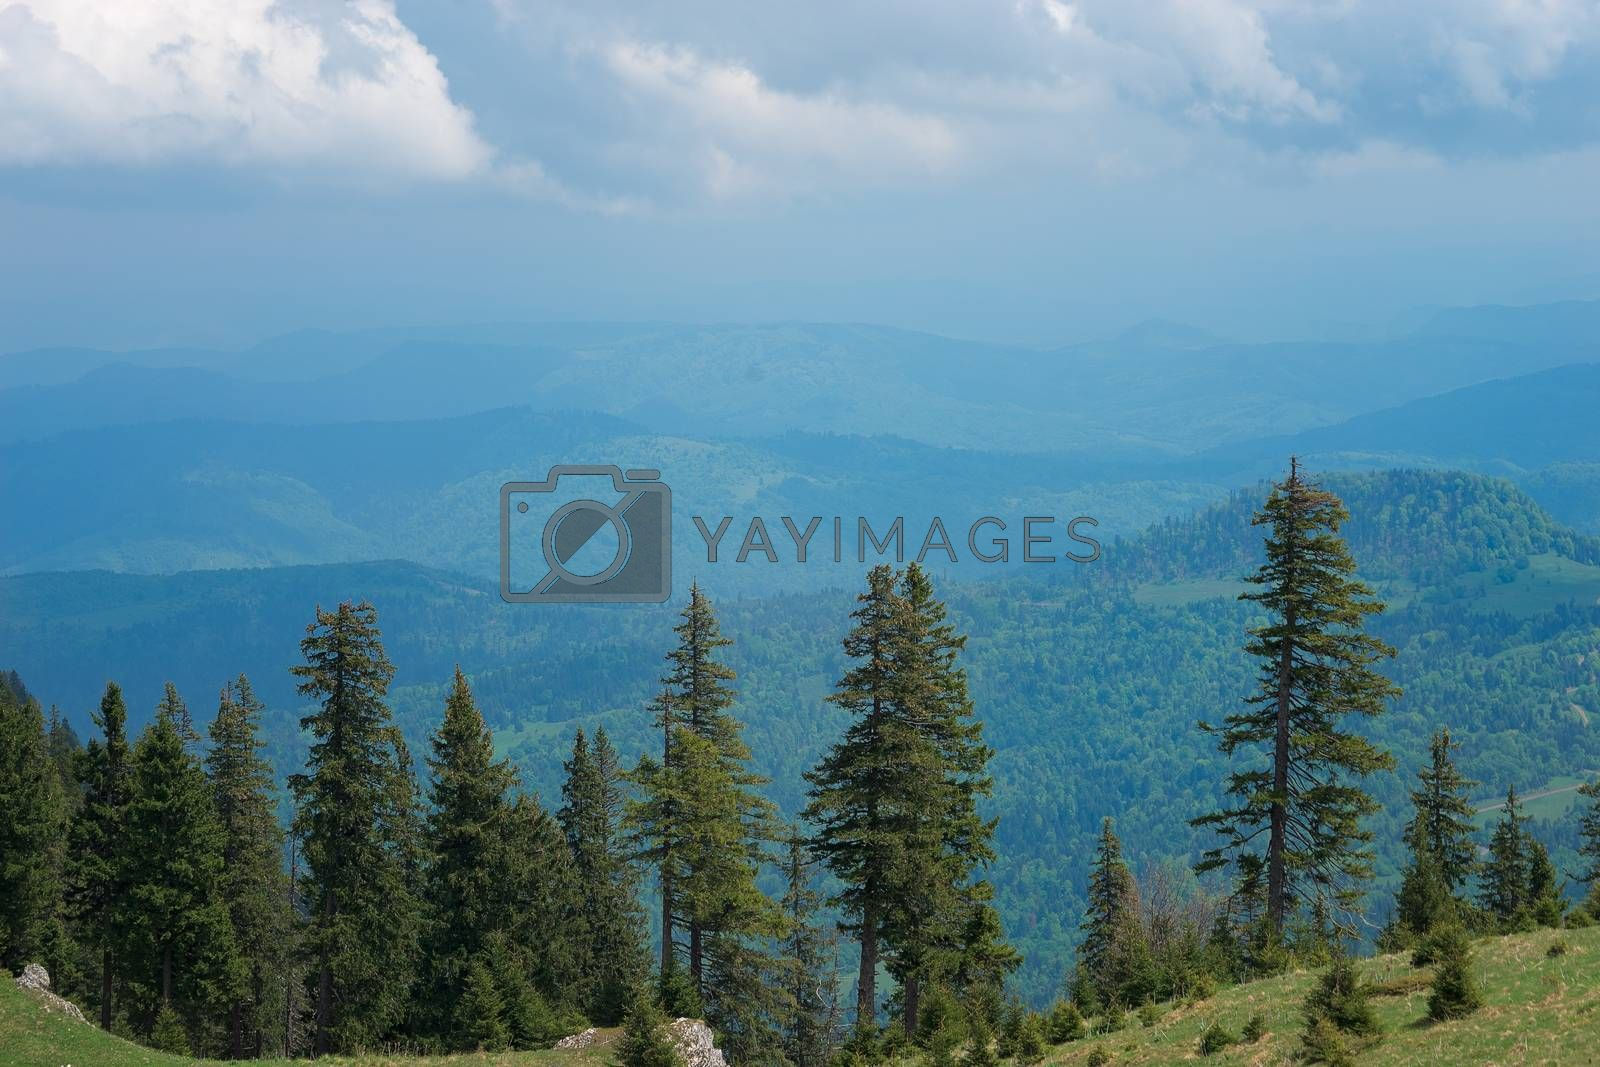 Royalty free image of Seven Ladders Canyon and Piatra Mare by adonis_abril